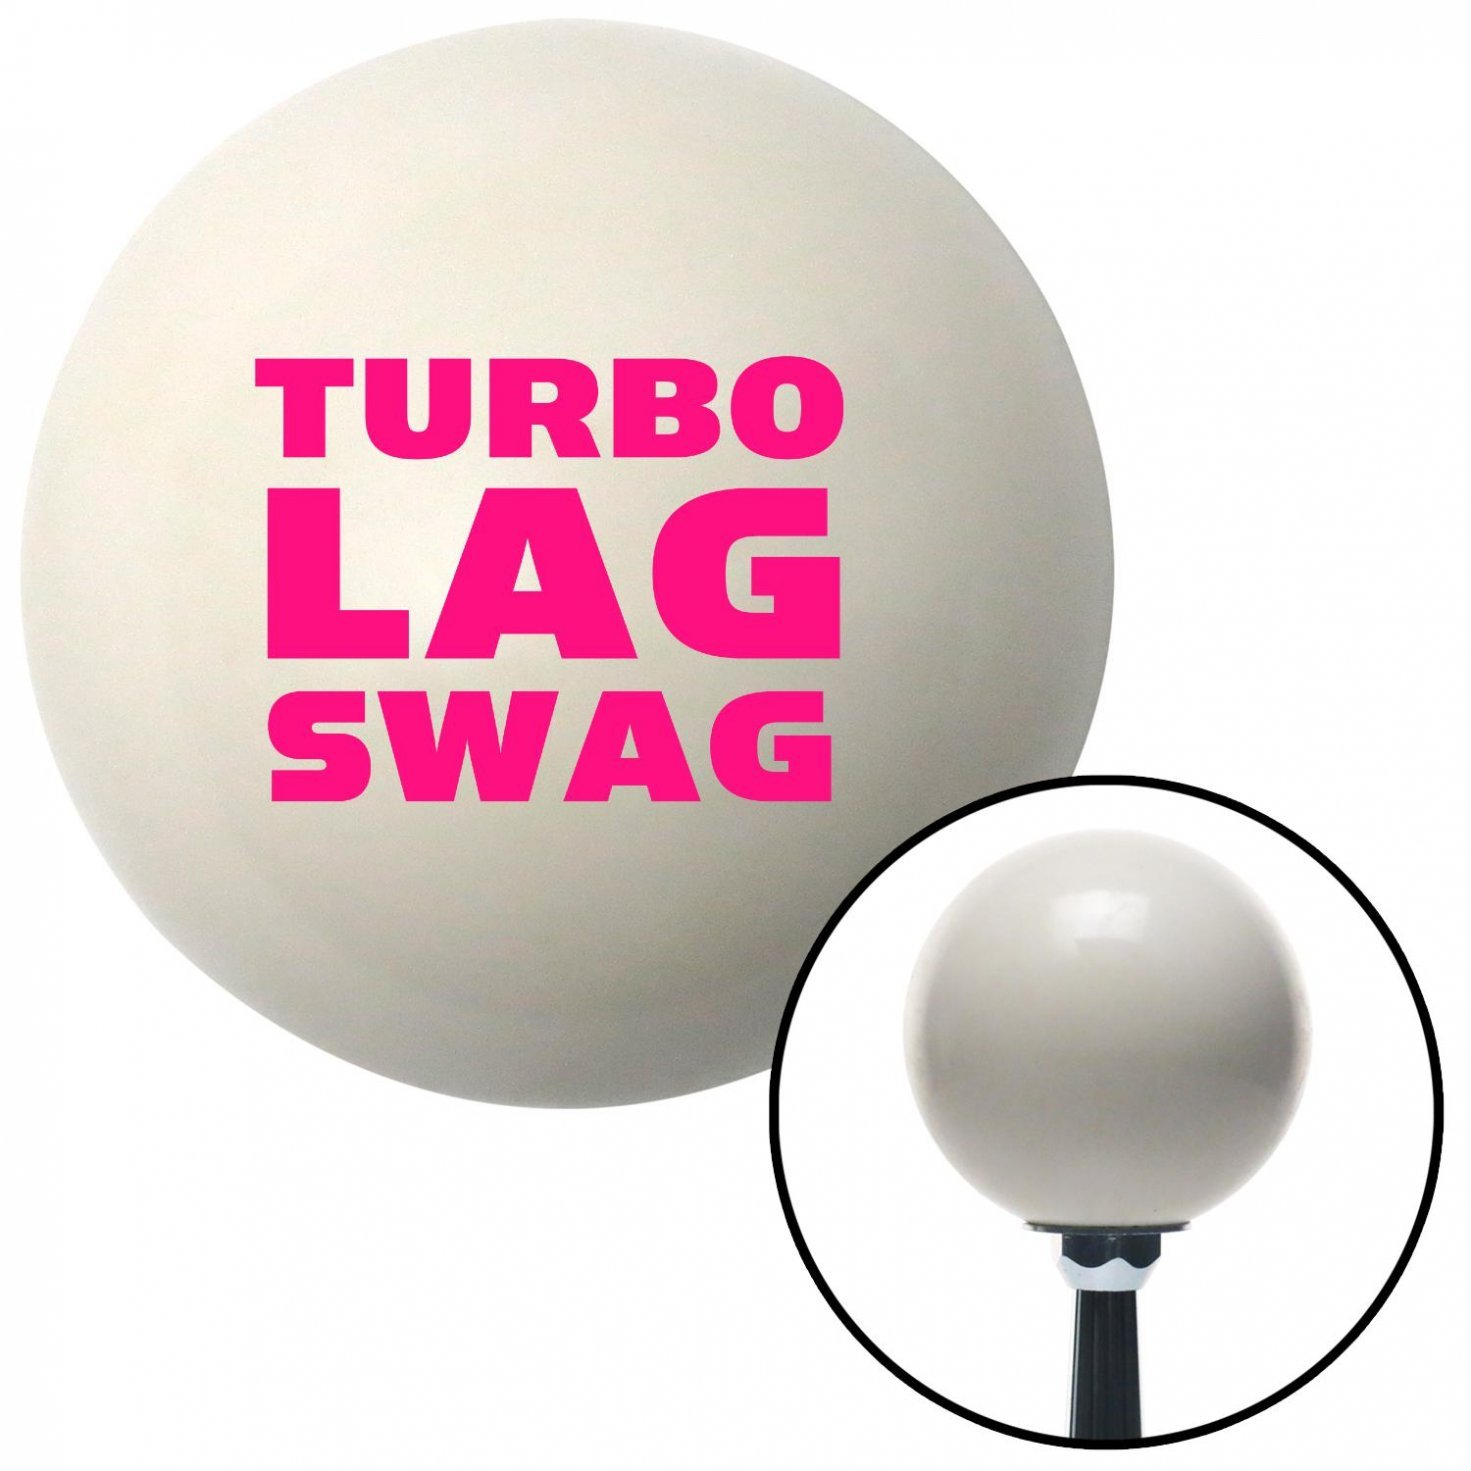 Pink Turbo Lag Swag American Shifter 34456 Ivory Shift Knob with 16mm x 1.5 Insert